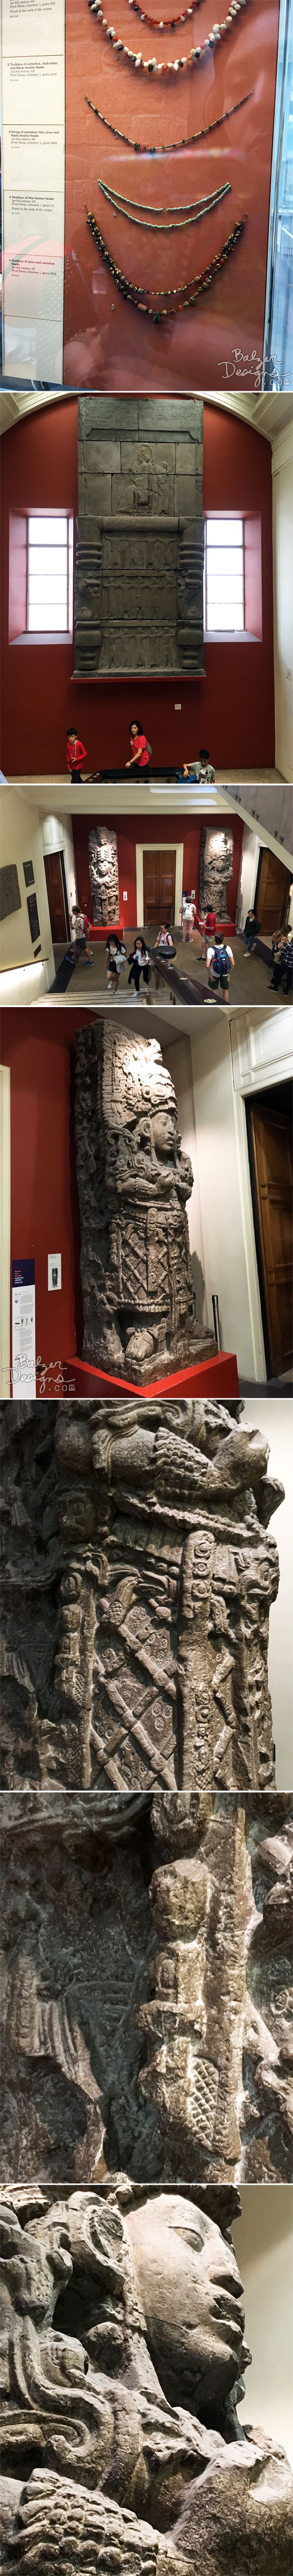 From the Balzer Designs Blog: A Brief Visit to The British Museum